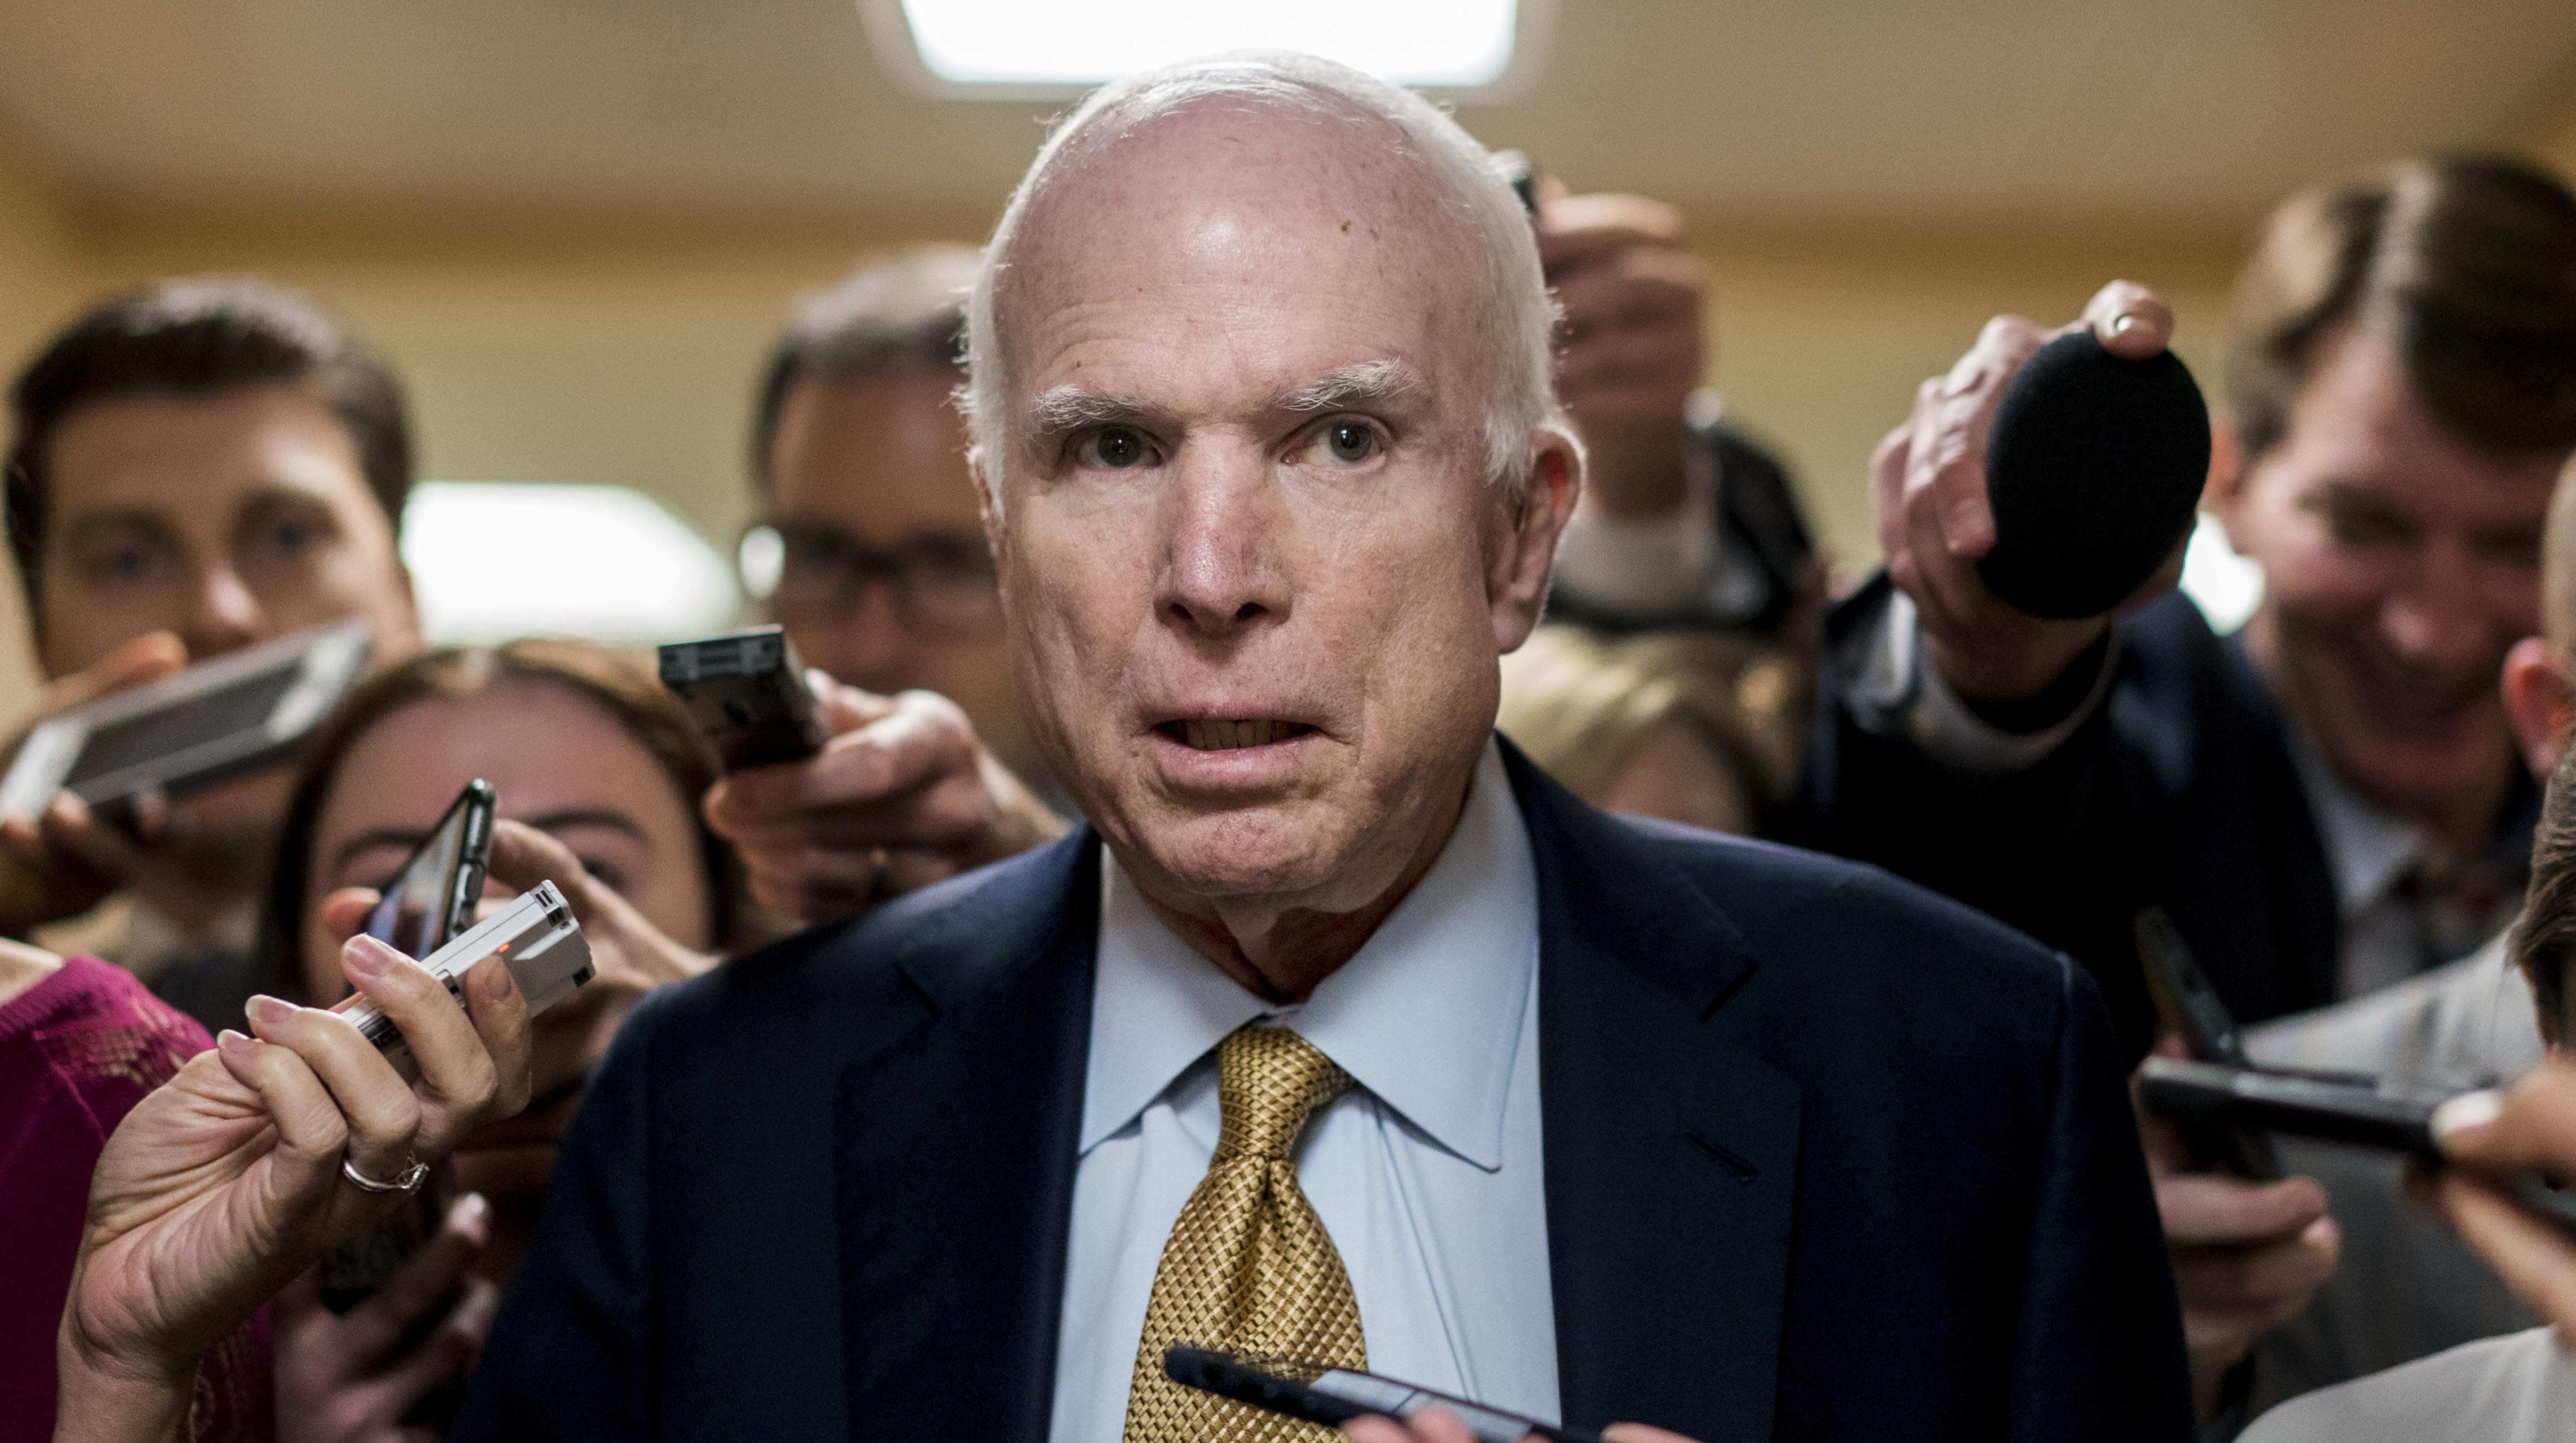 John McCain Will Not Continue Treatment For Brain Cancer, Family Says